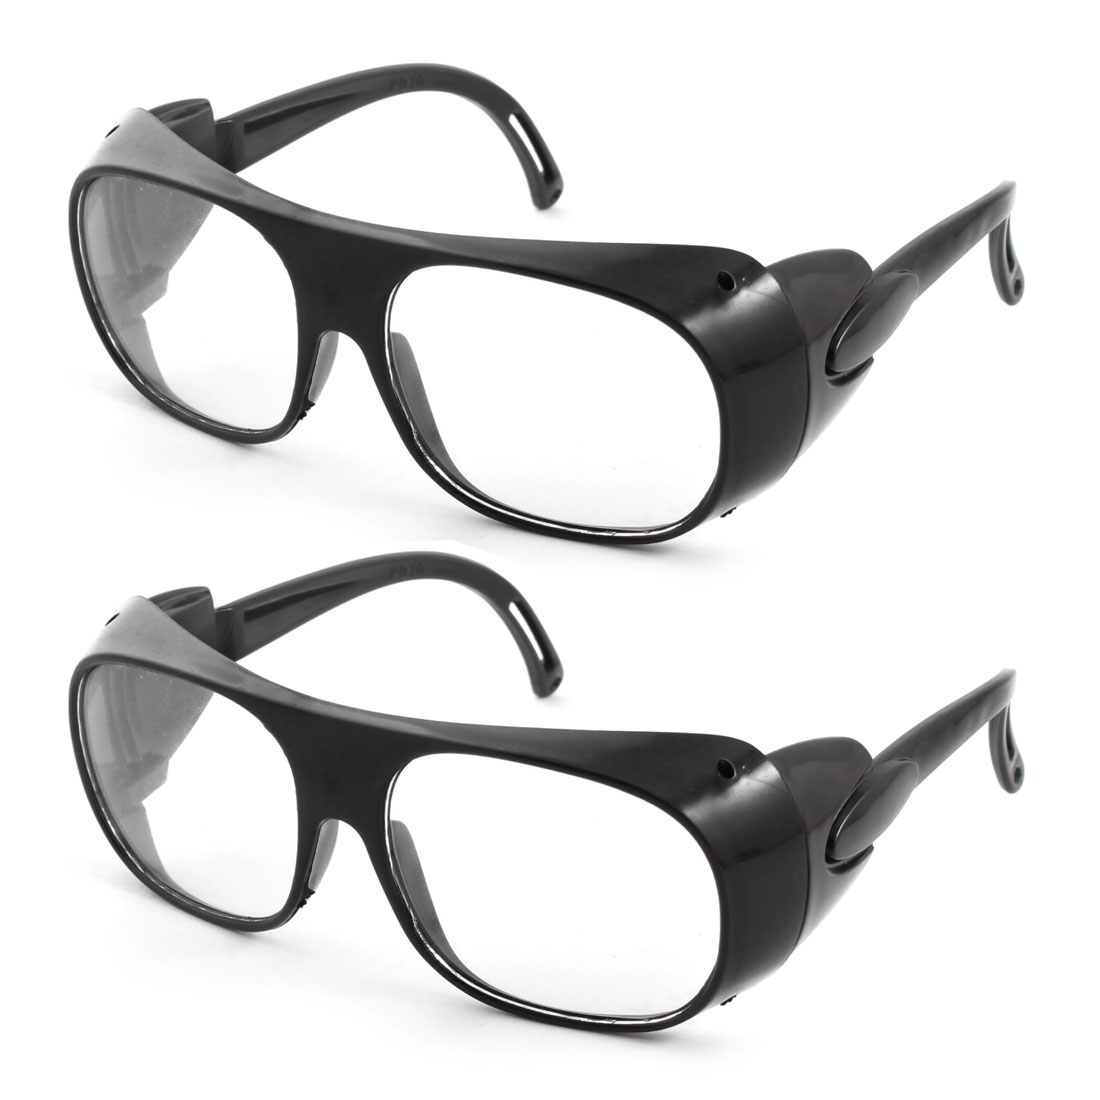 Black Plastic Arms Full Frame Protective Welding Plain Glasses 2pcs